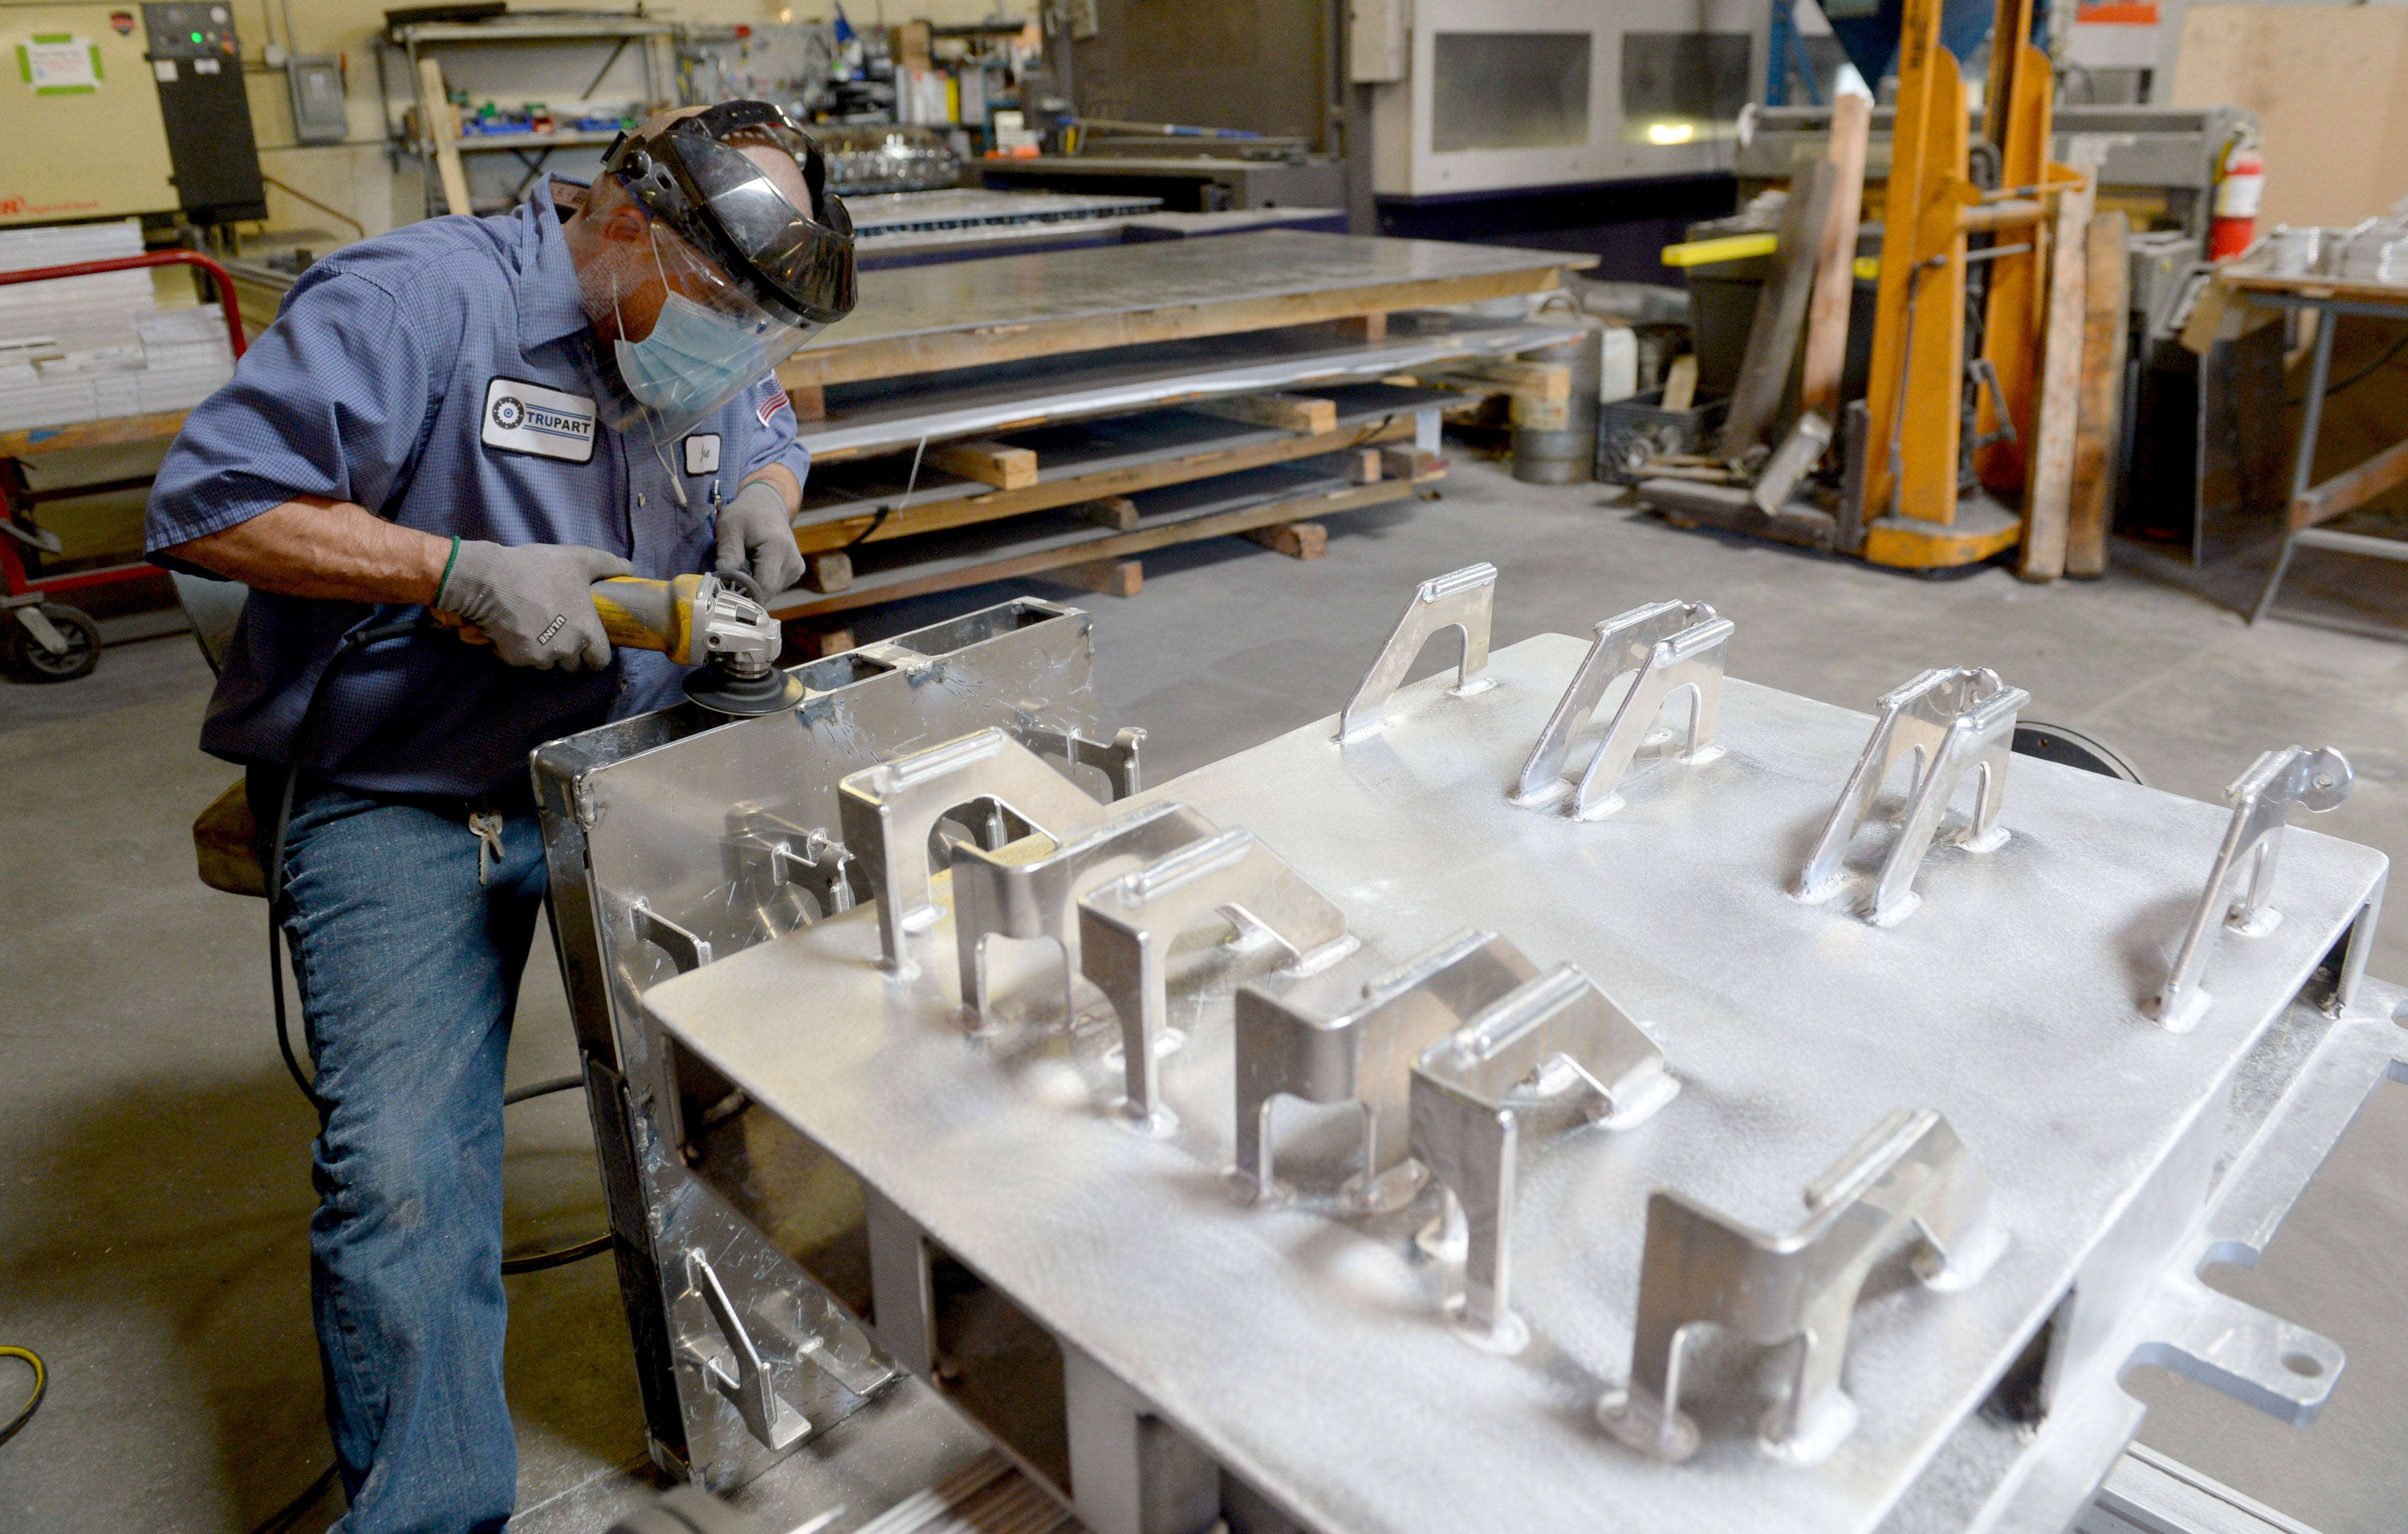 Jesse Perez cleans up metal pallets at Trupart Manufacturing on Tuesday, Feb. 23, 2021. Trupart is a design, prototype, fabrication and production firm in Ventura that after nearly 50 years in business narrowly avoided closing its doors during the COVID-19 pandemic.